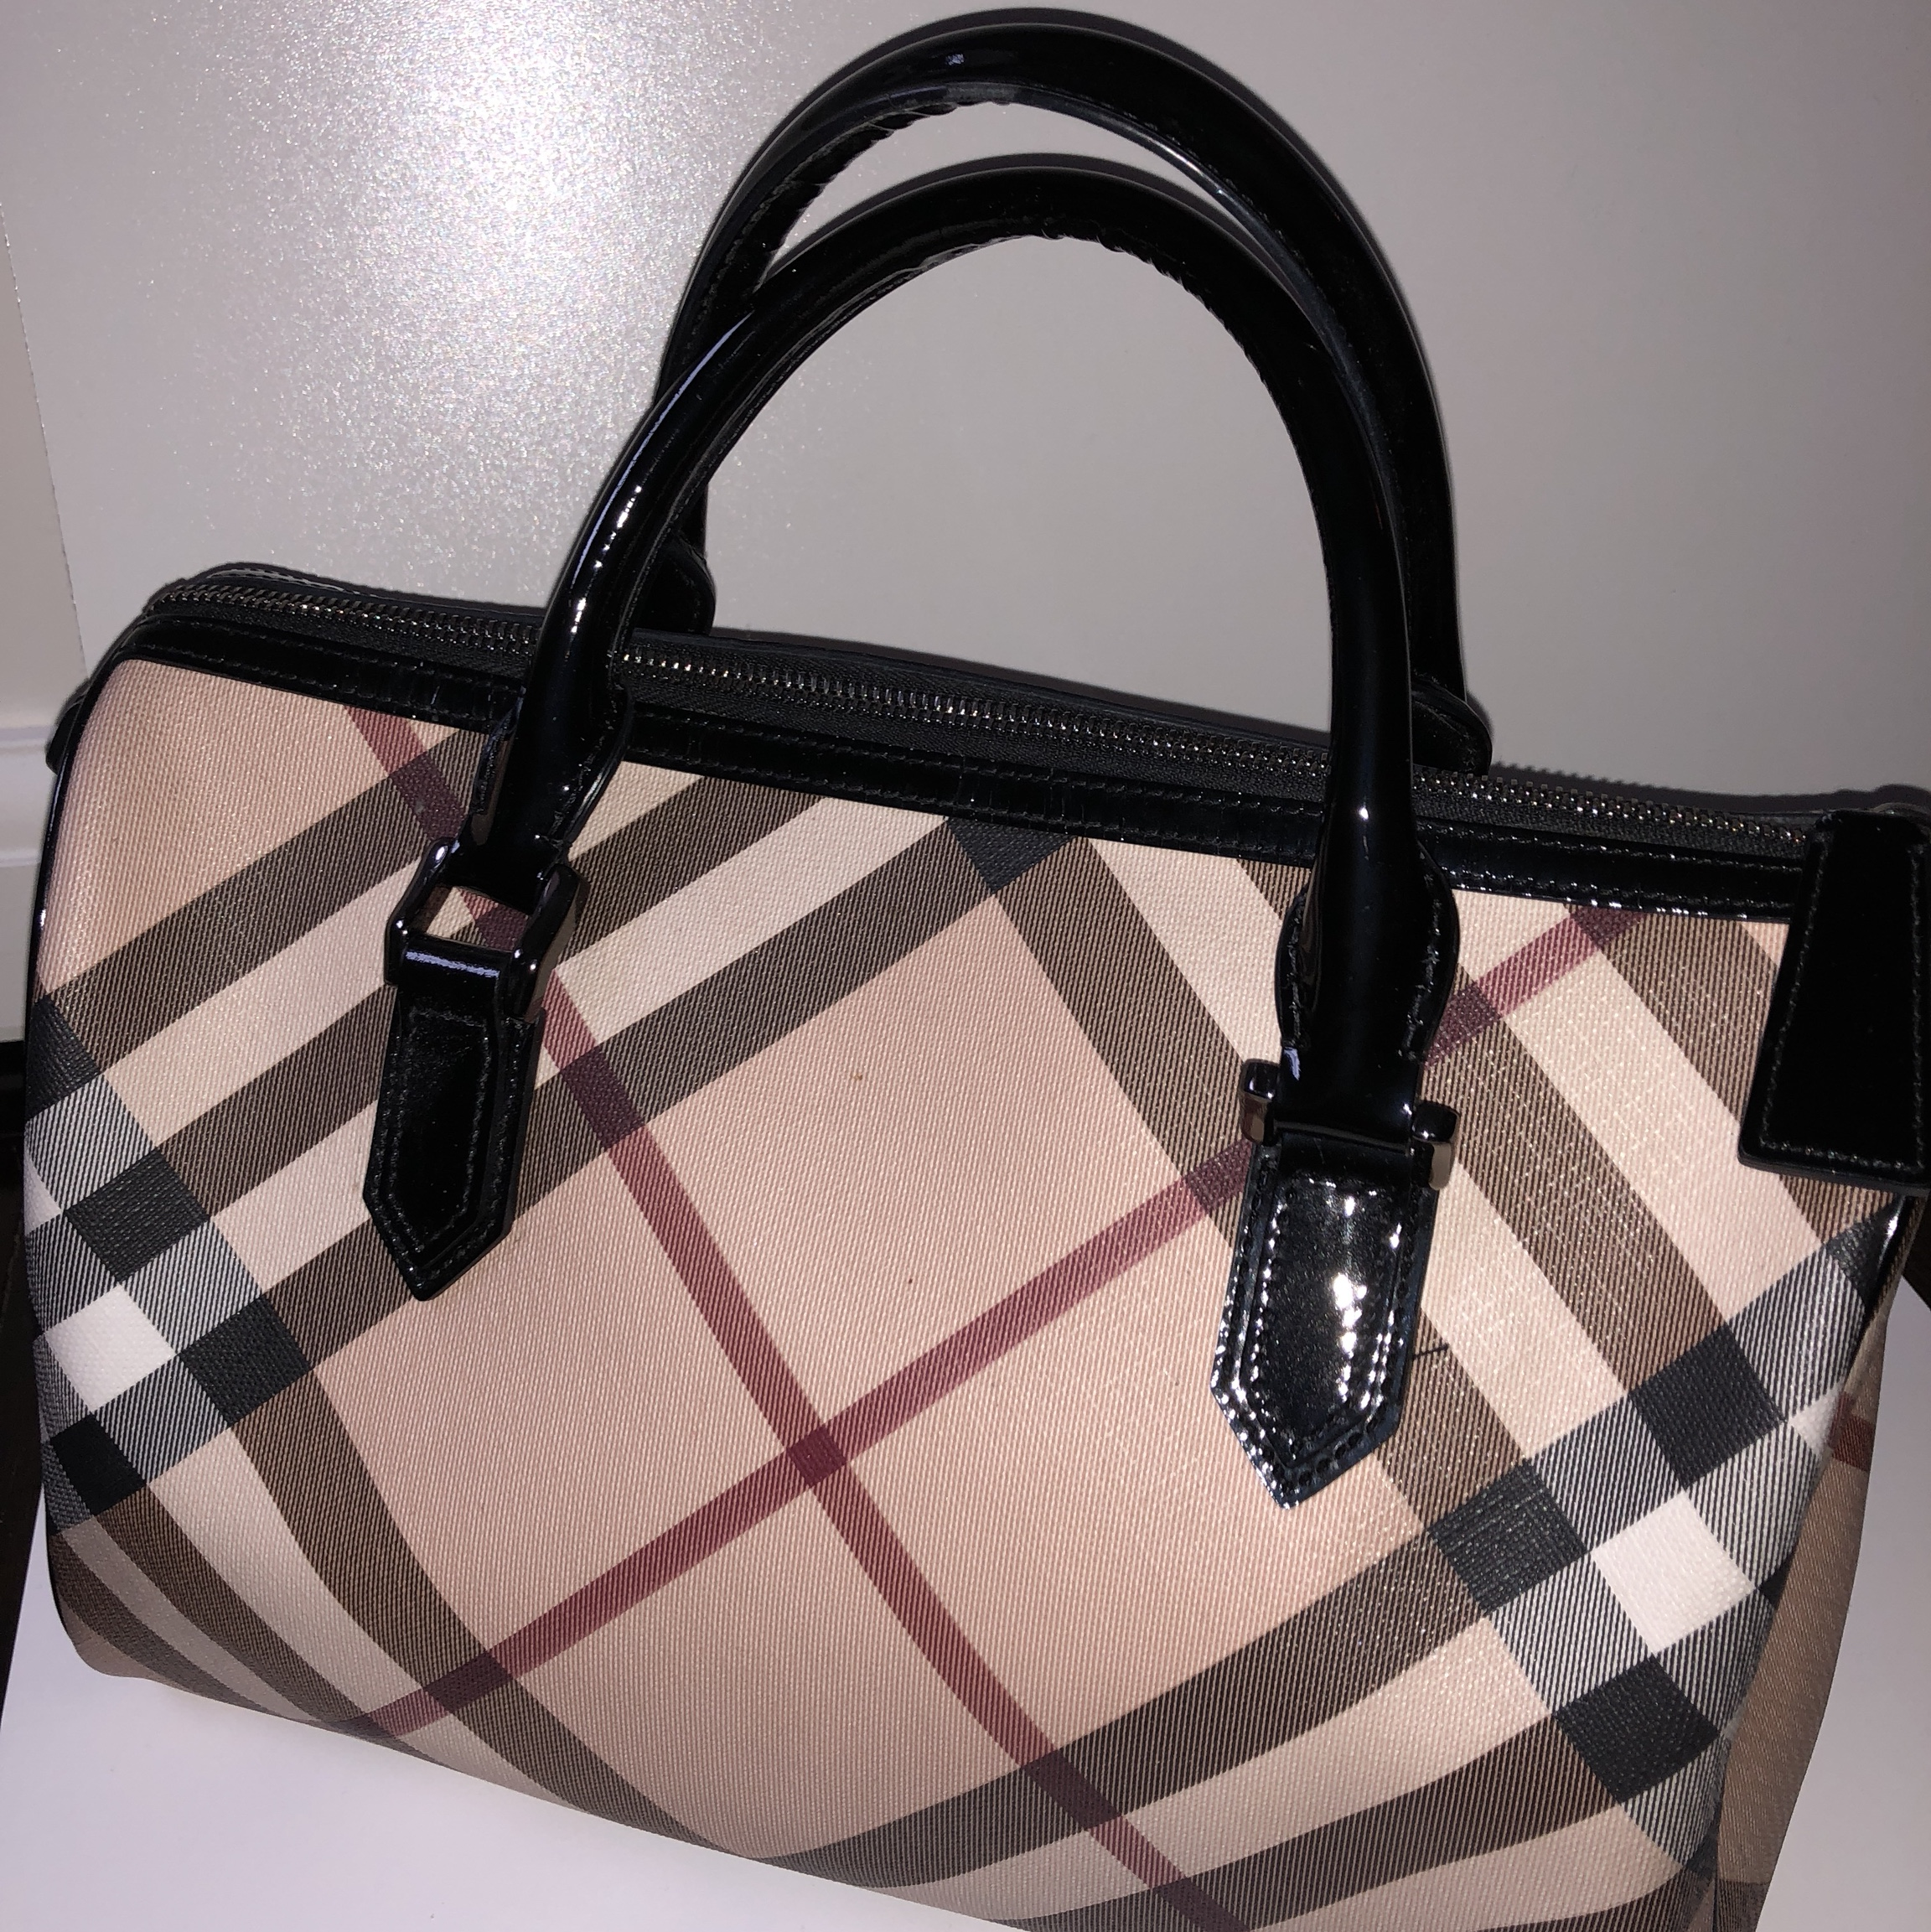 8cdbe7462501 Classic Burberry bowling bag in great condition! Previously - Depop